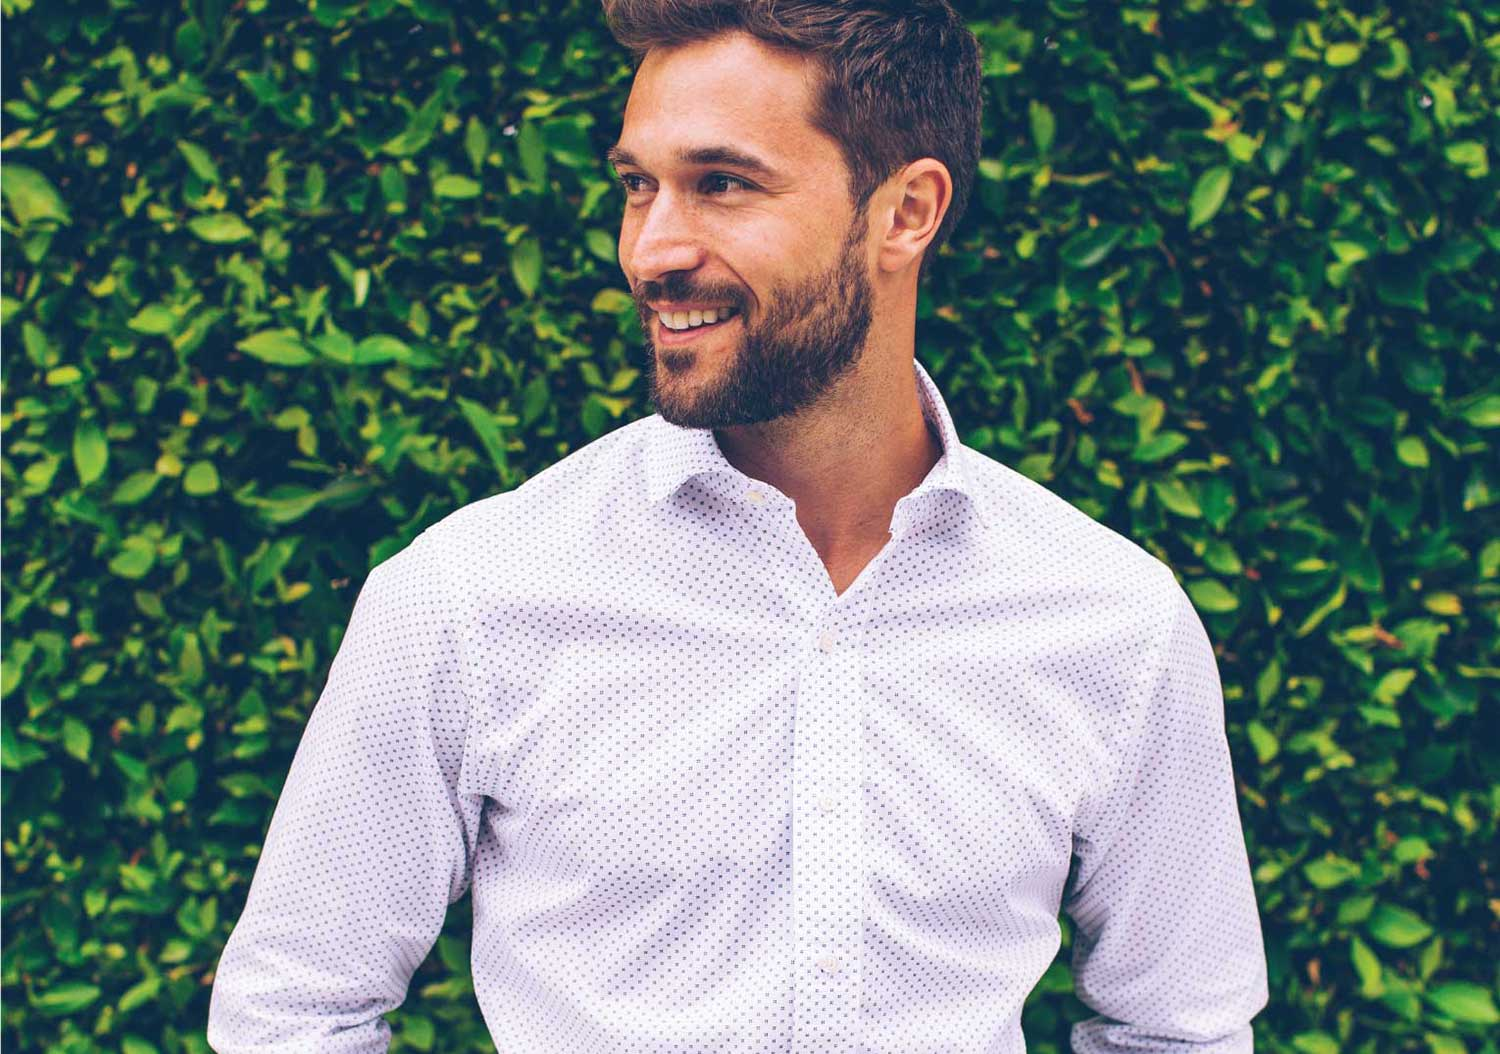 Man wearing Ratio Clothing shirt in front of hedges